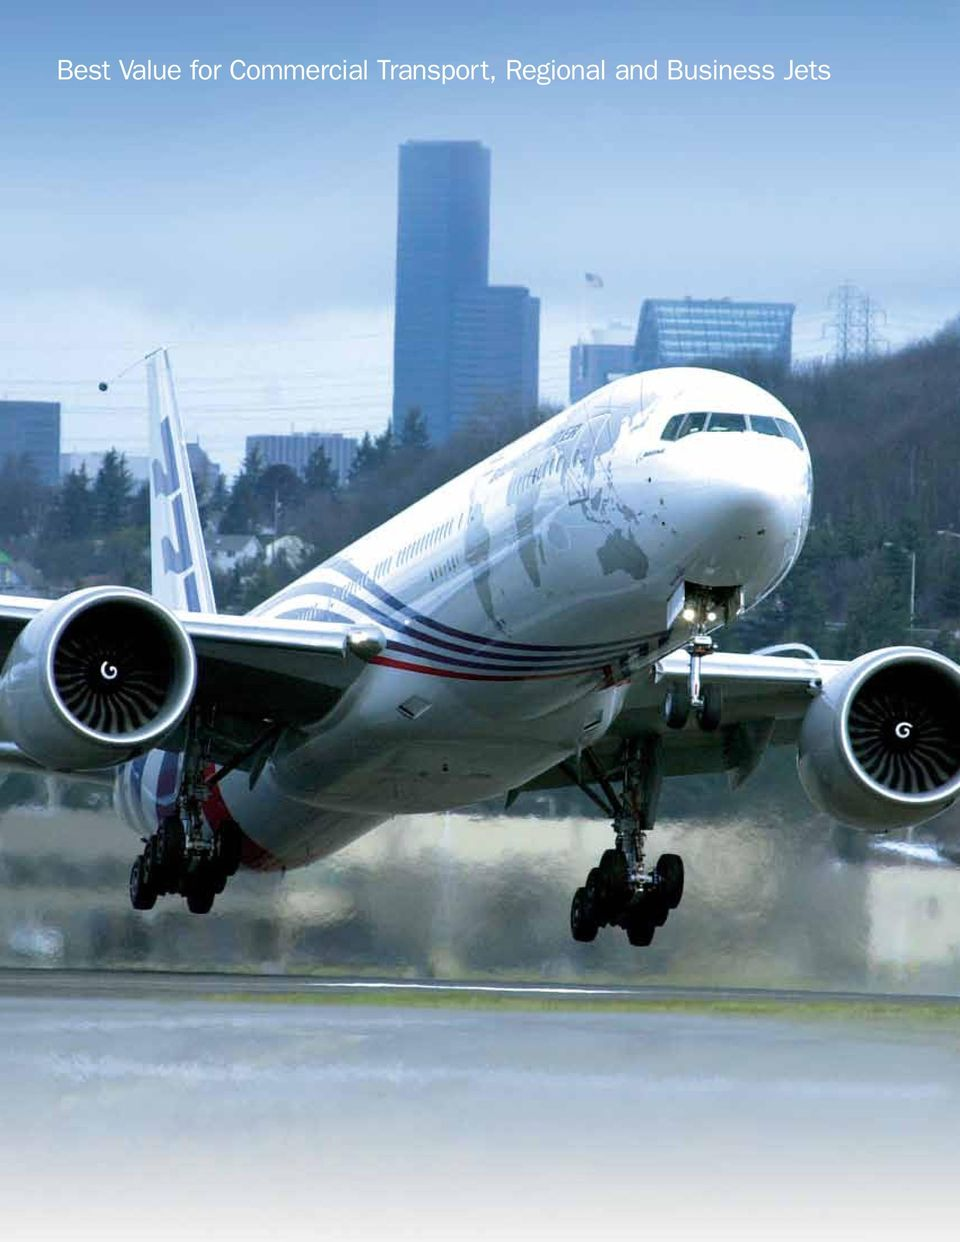 flight control systems For long-haul flights, regional transport and business flights alike, safran electronics & defense flight control systems ensure perfect pilot assistance under optimum safety conditions.